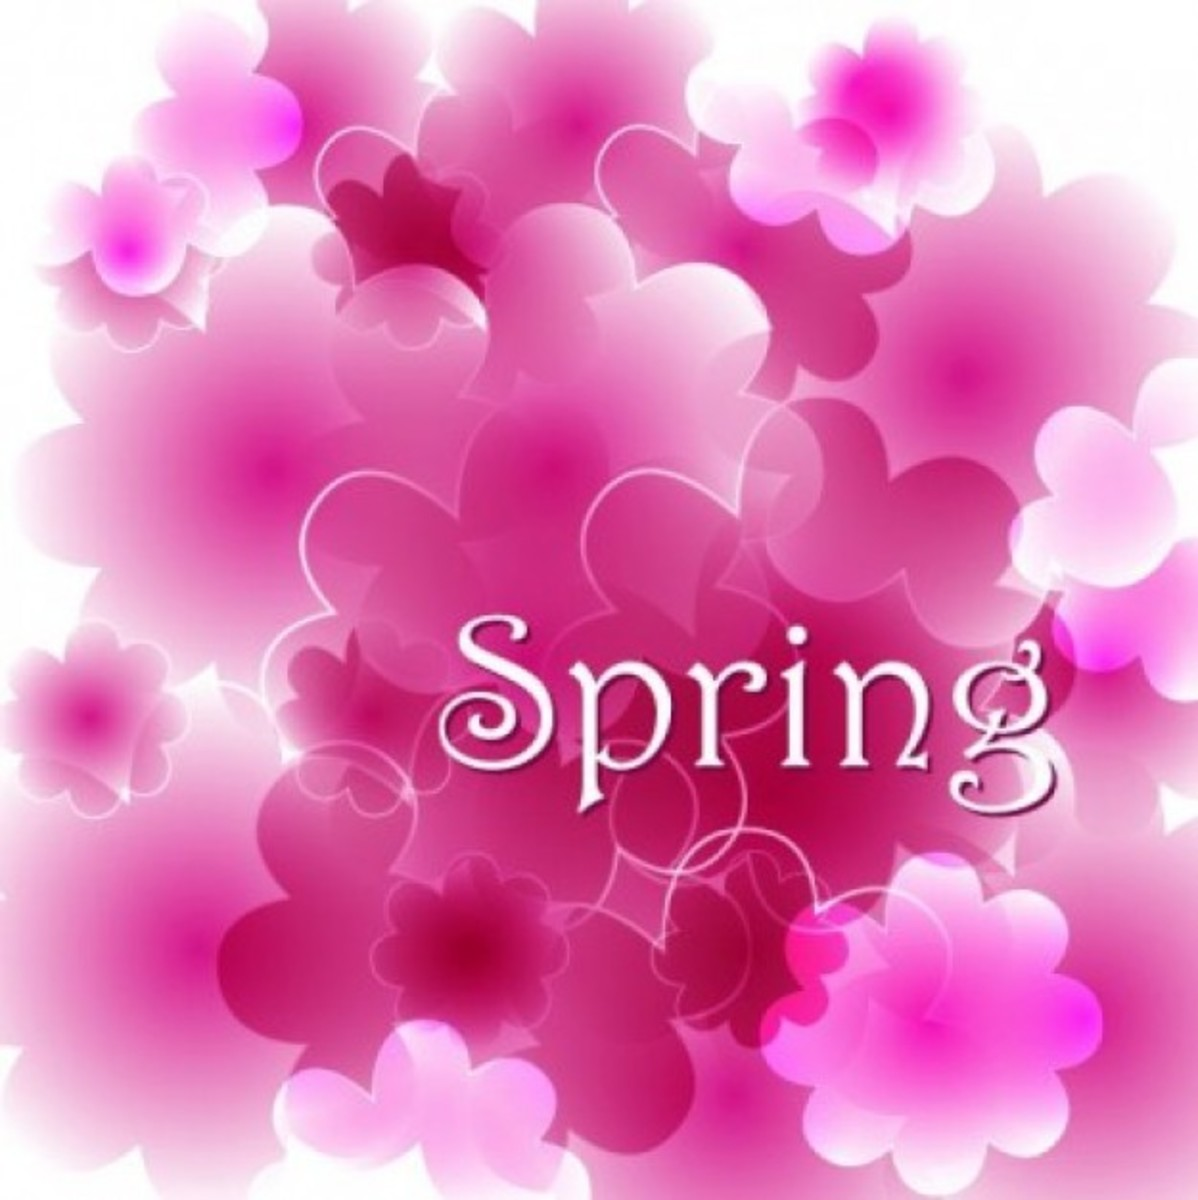 Spring with Pink Flowers